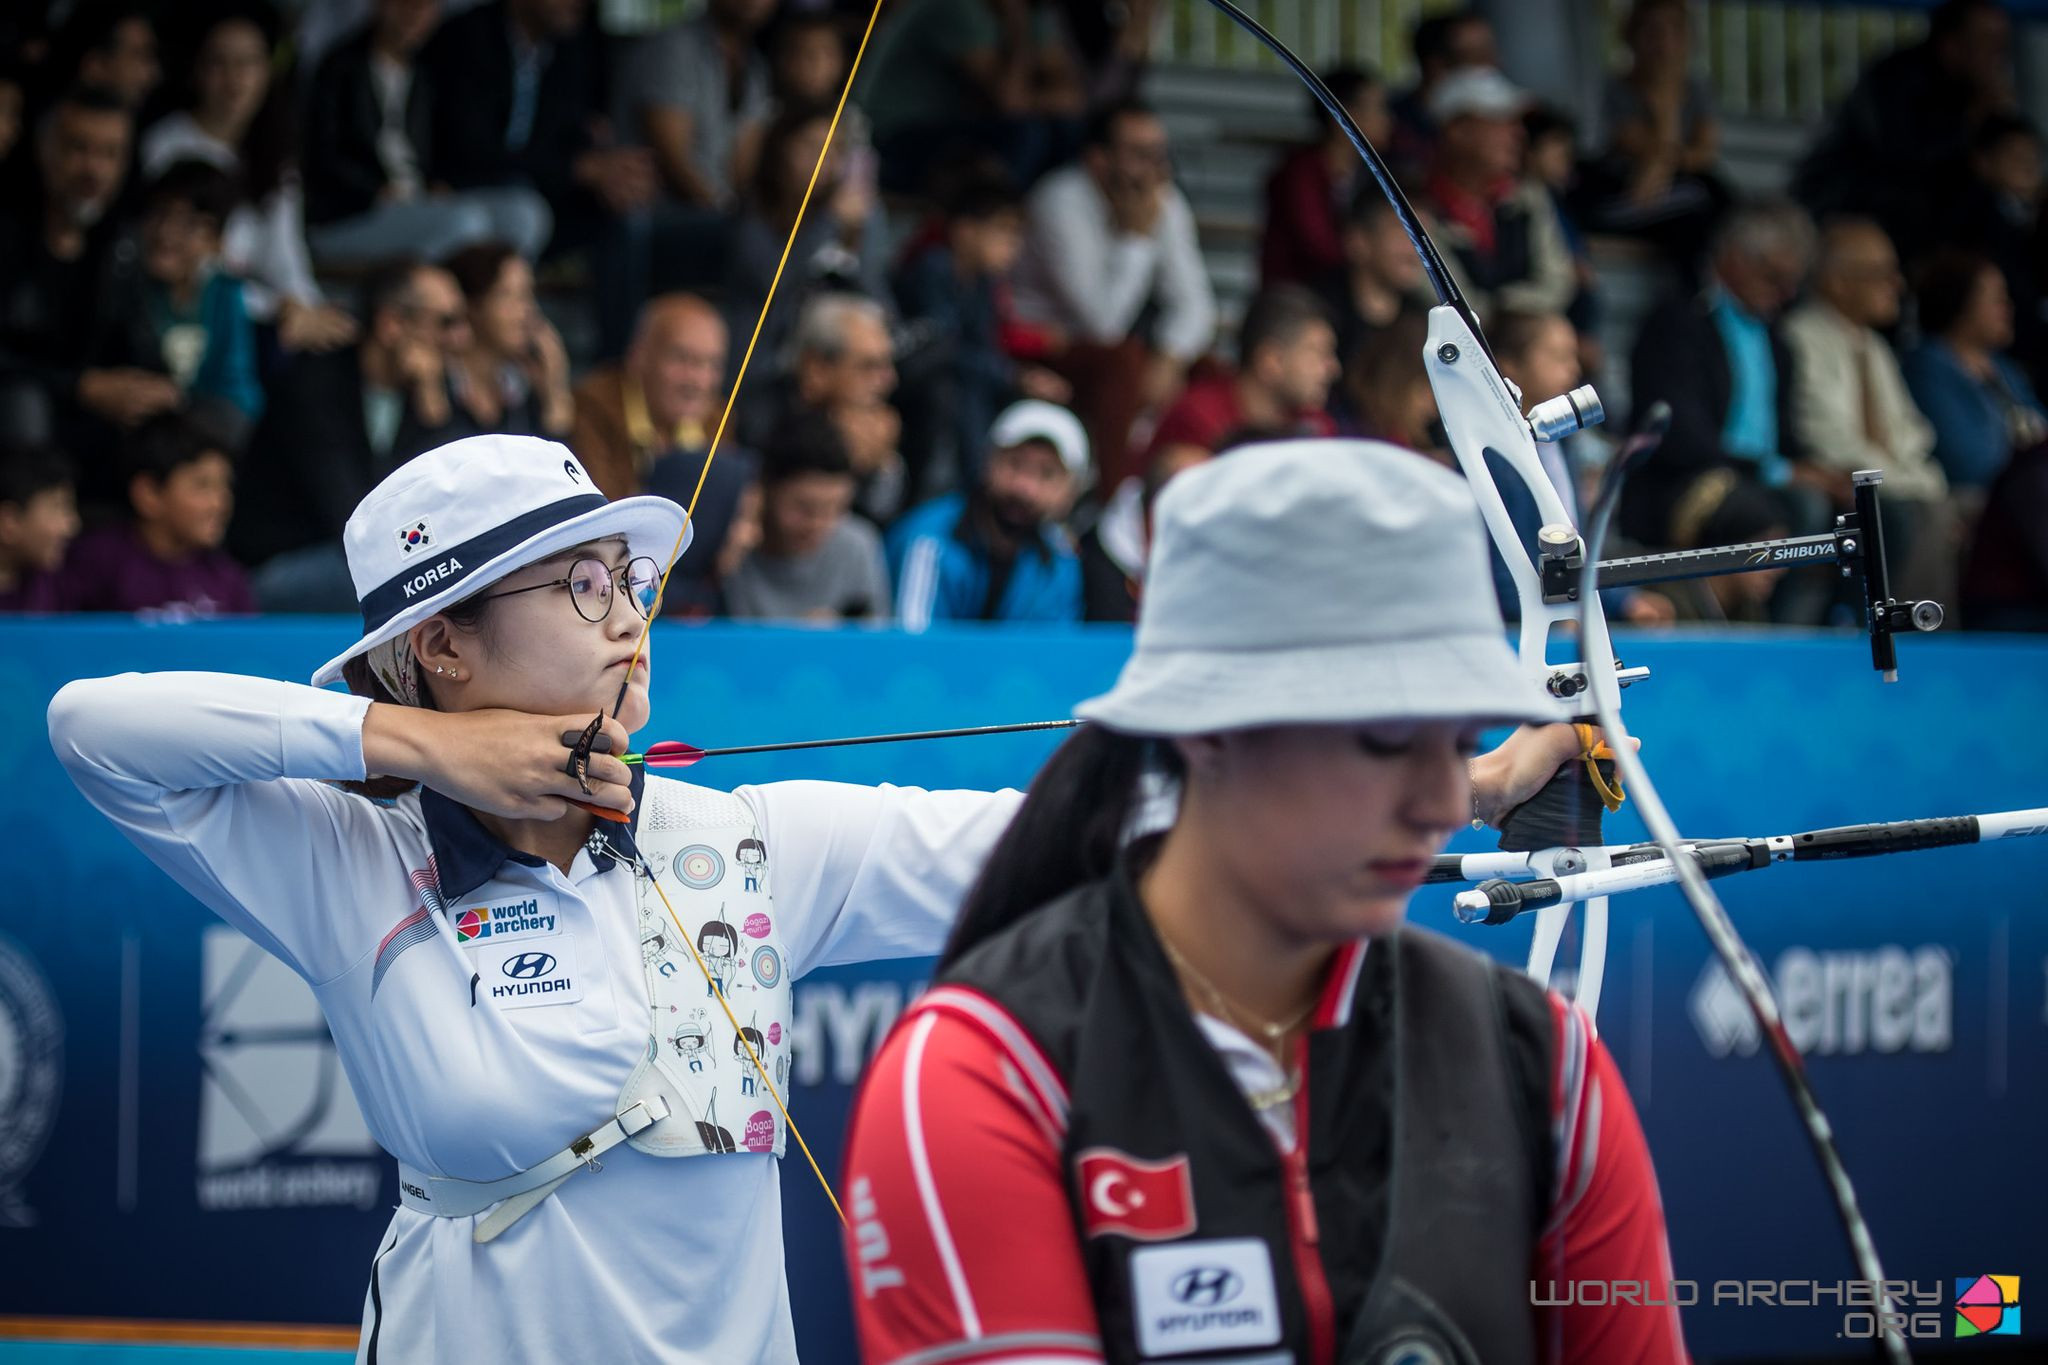 South Korea's 21-year-old Lee Eun Gyeong, left, in her debut international season, beat home archer Yasemin Anagoz in the women's recurve final at the Archery World Cup Final in Samsun, Turkey ©World Archery